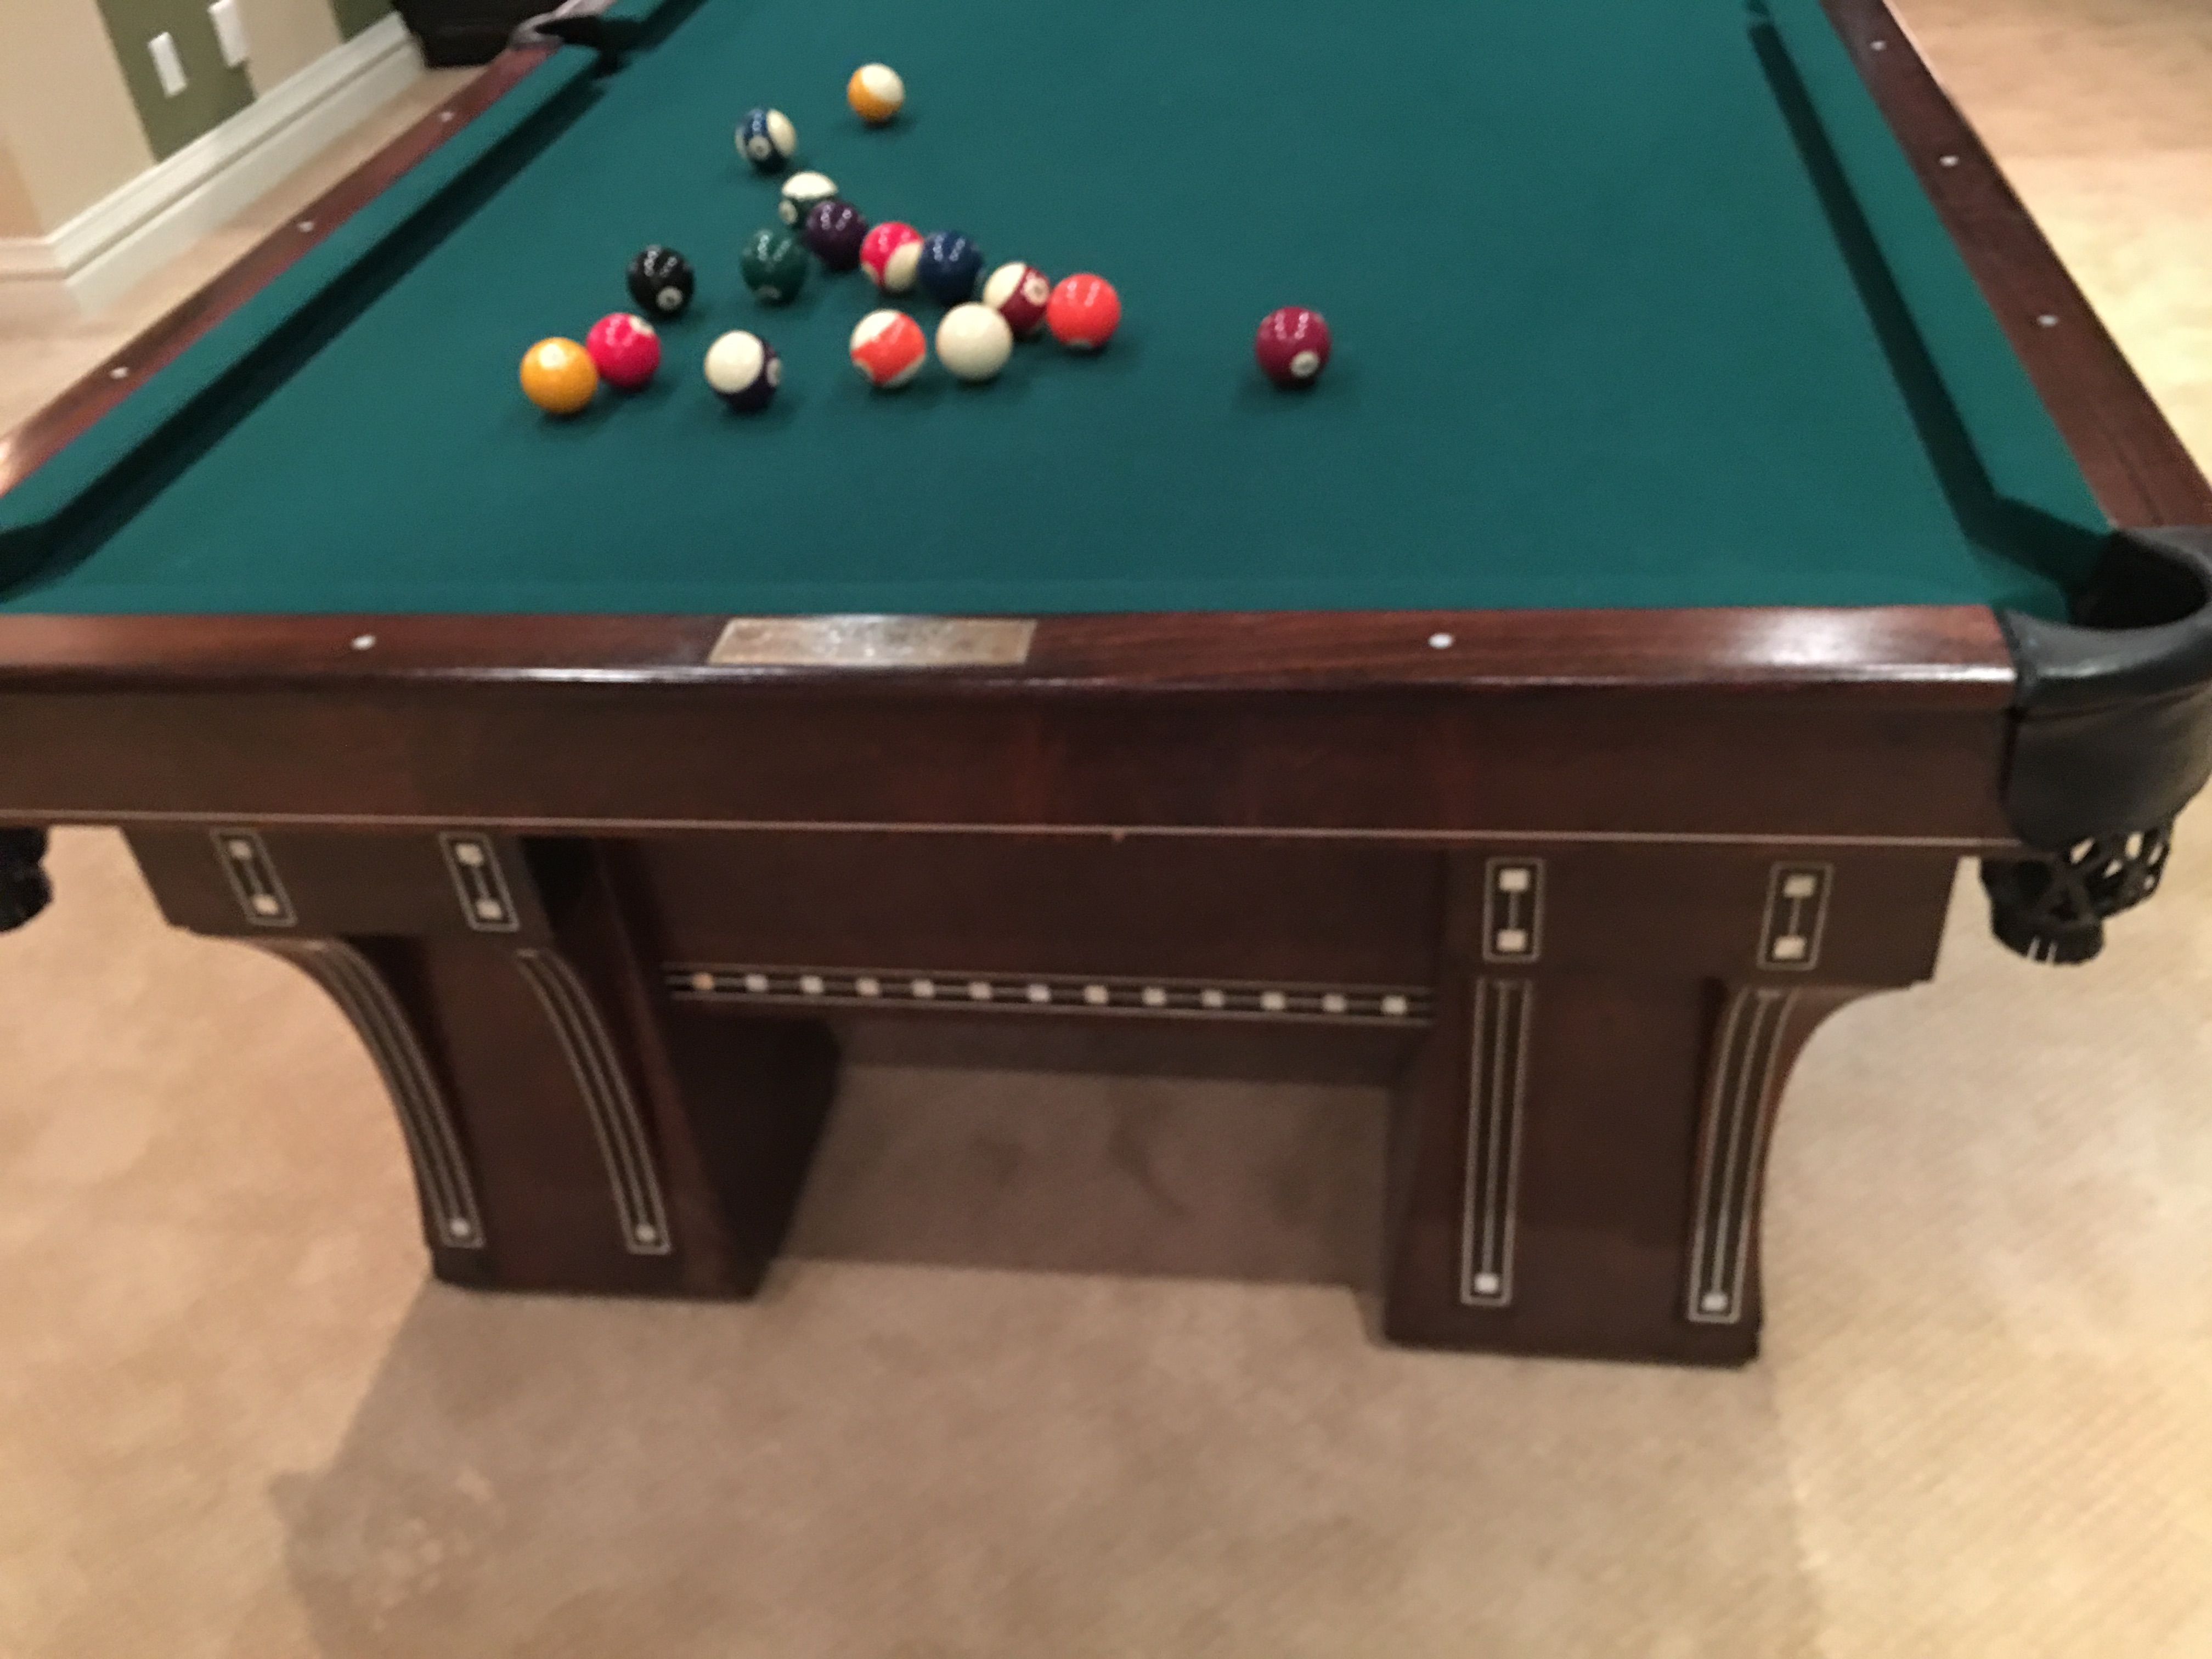 Surprising Blog Pool Table Repairs In Denver Co The Pool Table Experts Download Free Architecture Designs Scobabritishbridgeorg